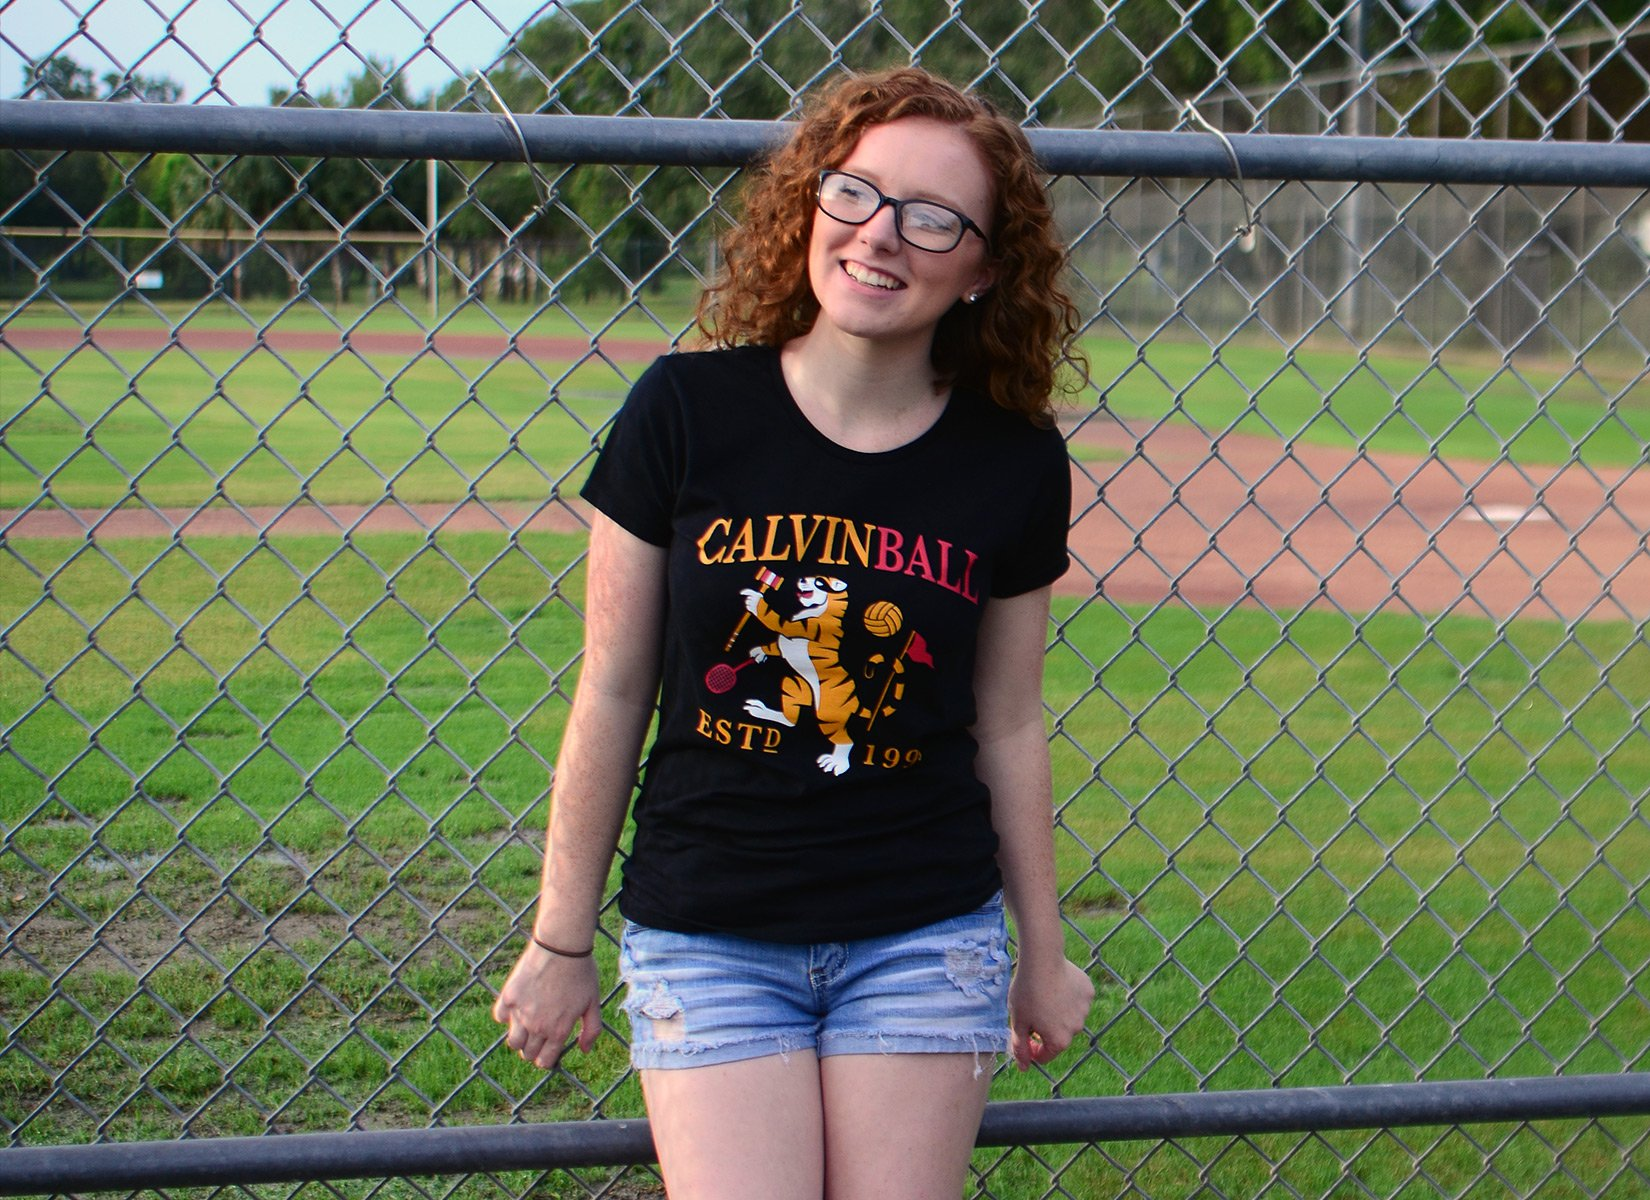 Calvinball on Womens T-Shirt